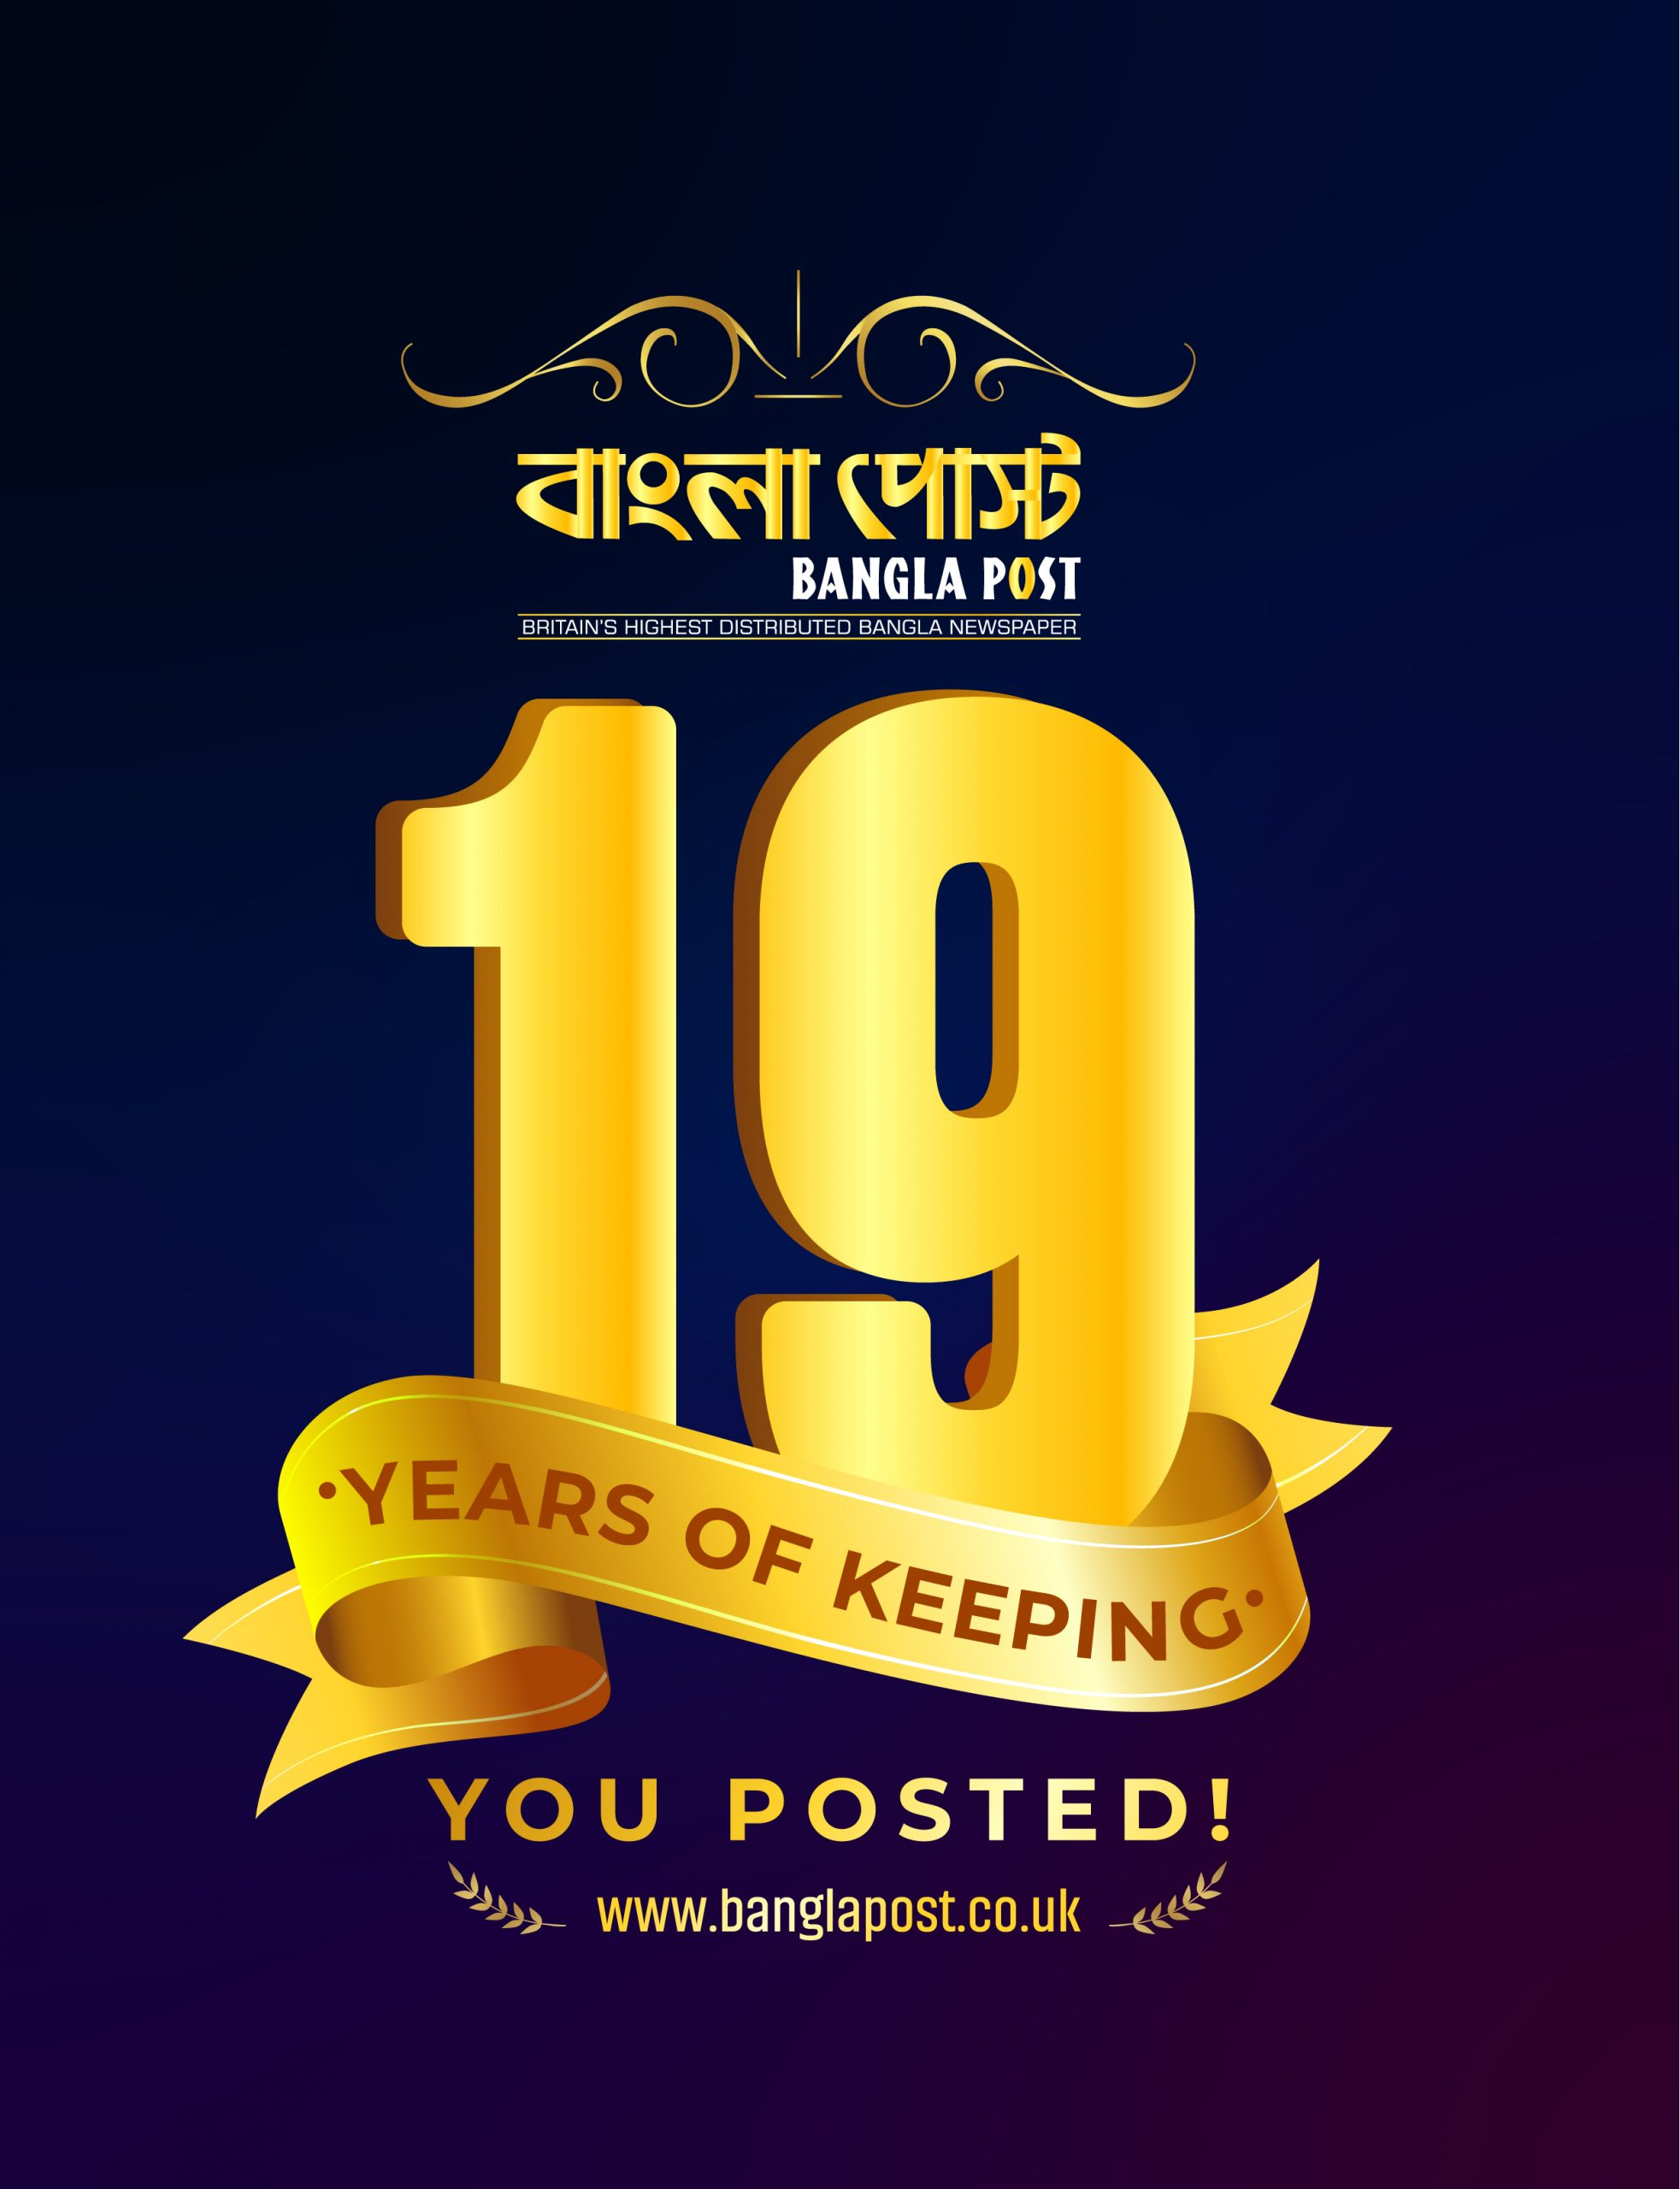 19 years of keeping you posted